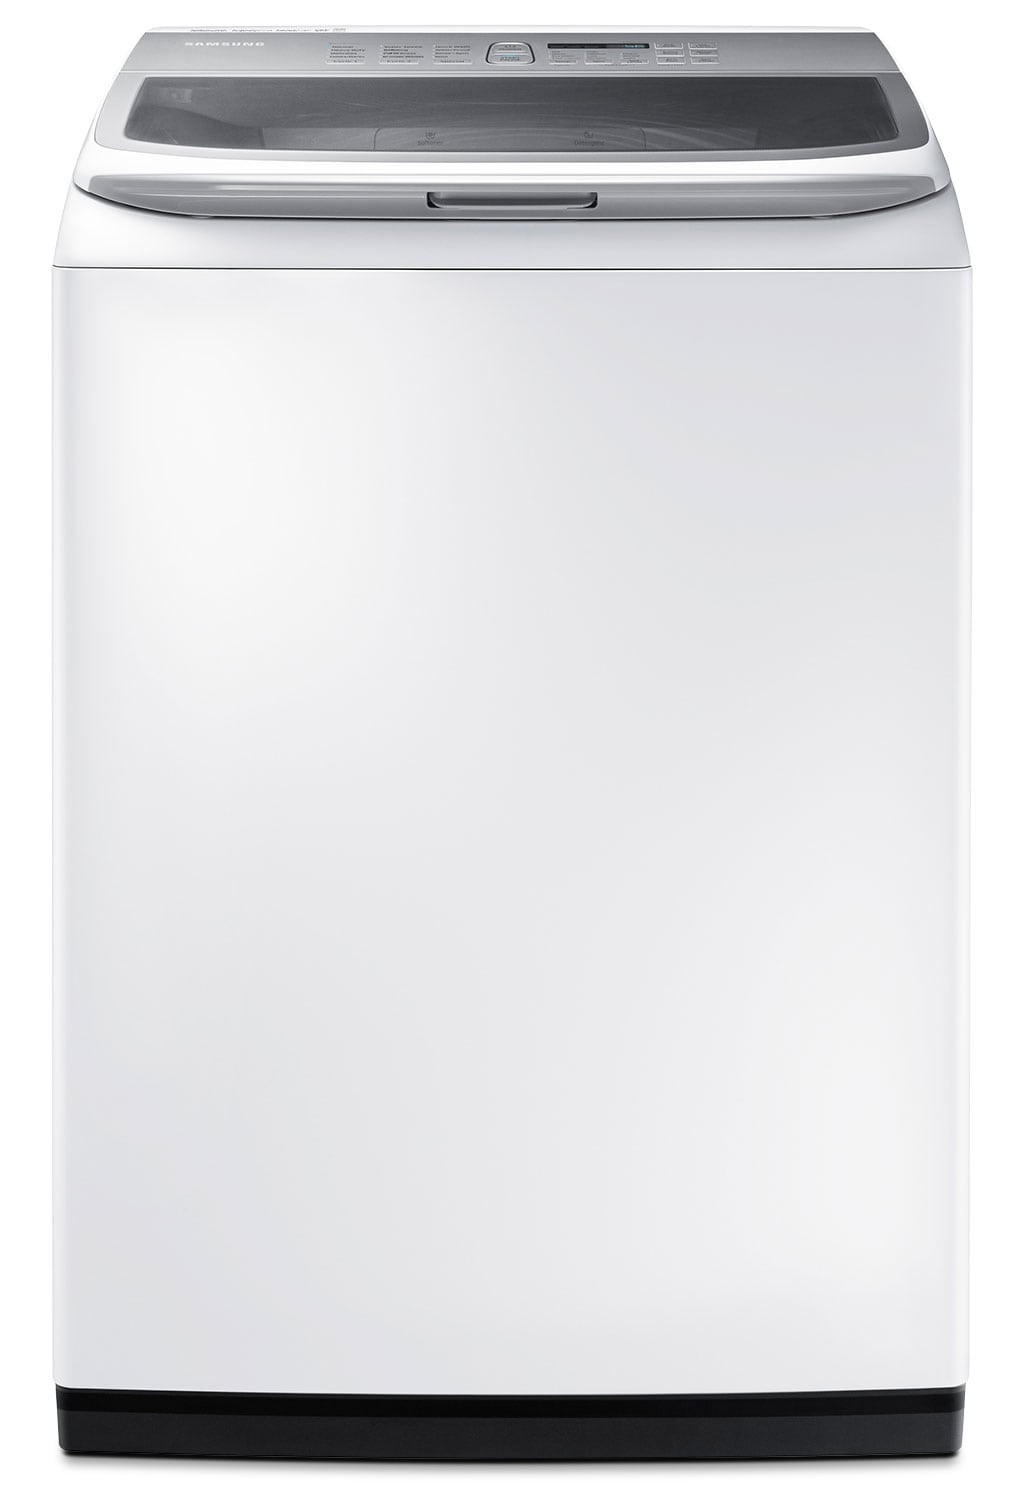 Washers and Dryers - Samsung White Top-Load Washer (5.2 Cu. Ft.) - WA45K7600AW/A2